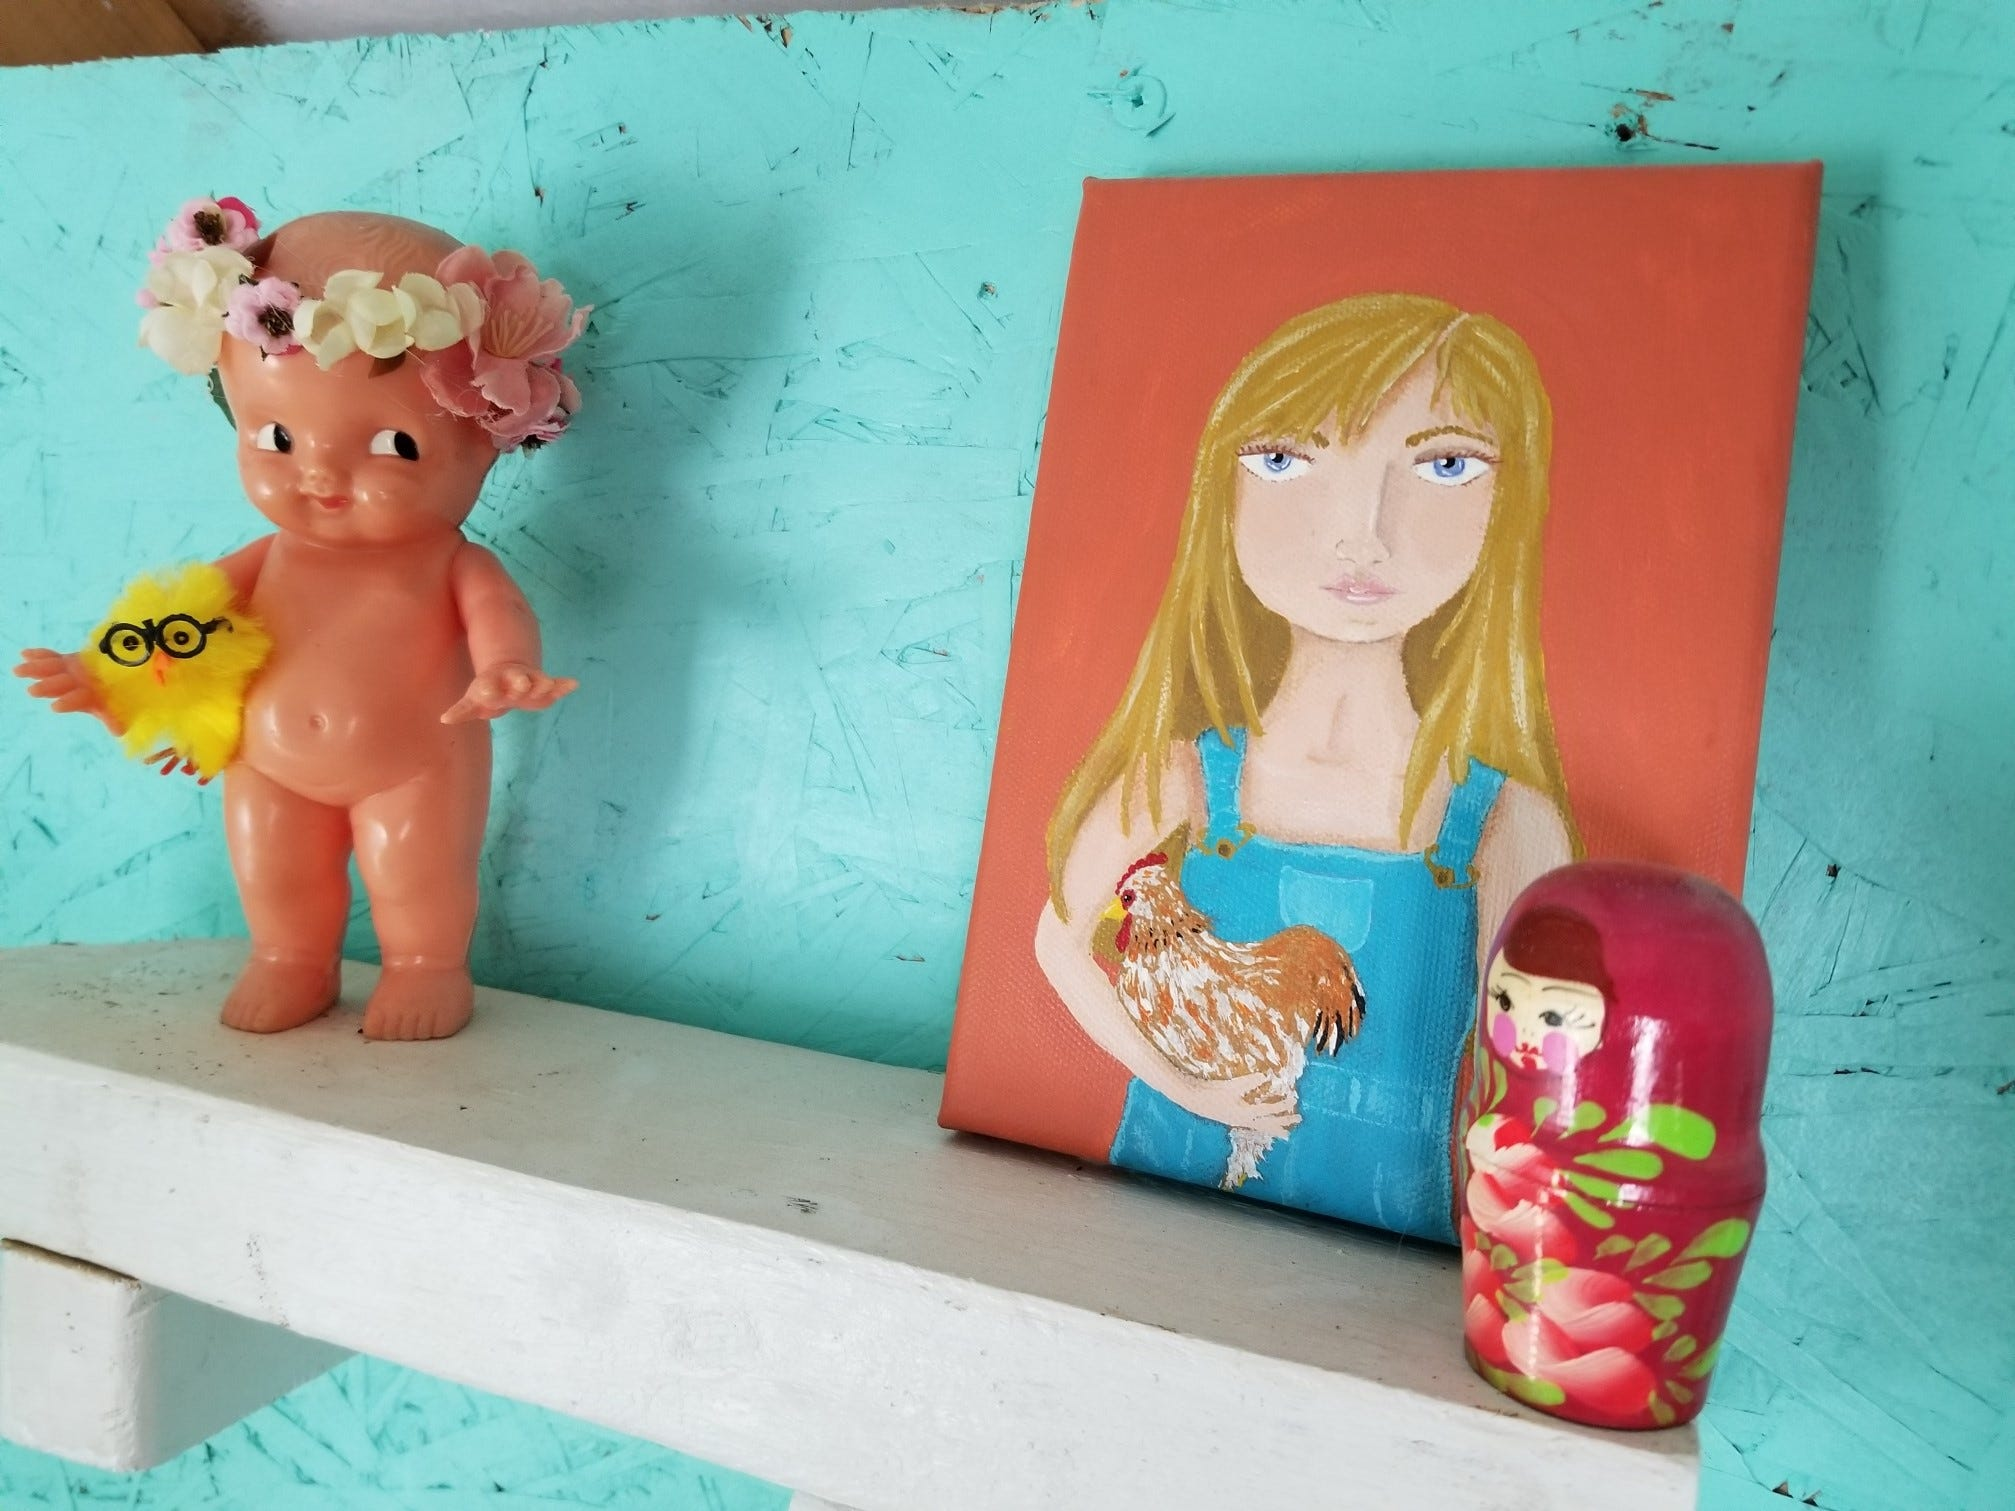 A shelf in Danielle Raad's chicken coop features one of her original paintings and other objects.